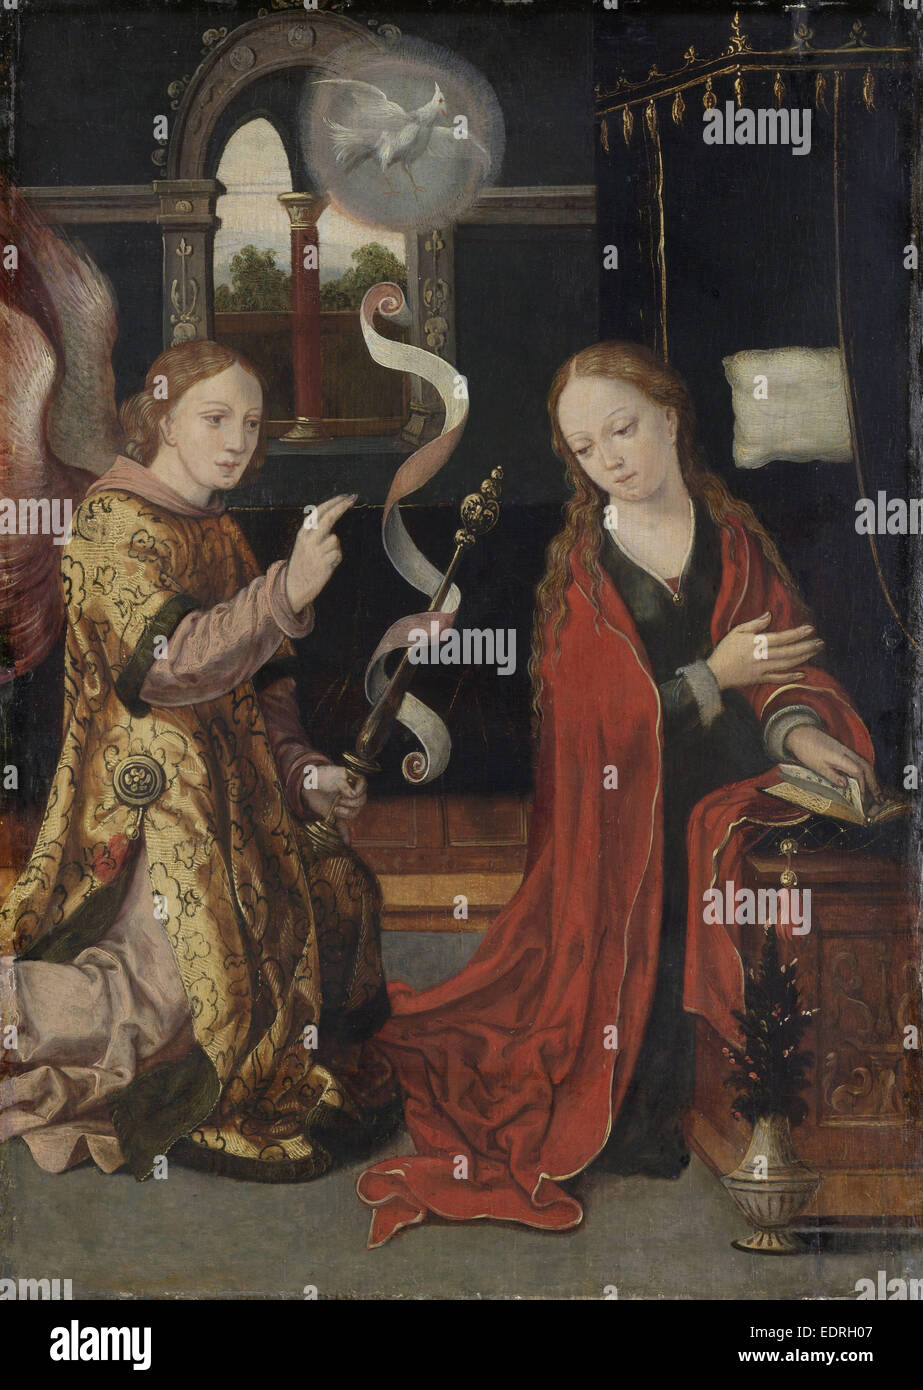 The Annunciation, Anonymous, c. 1550 - Stock Image